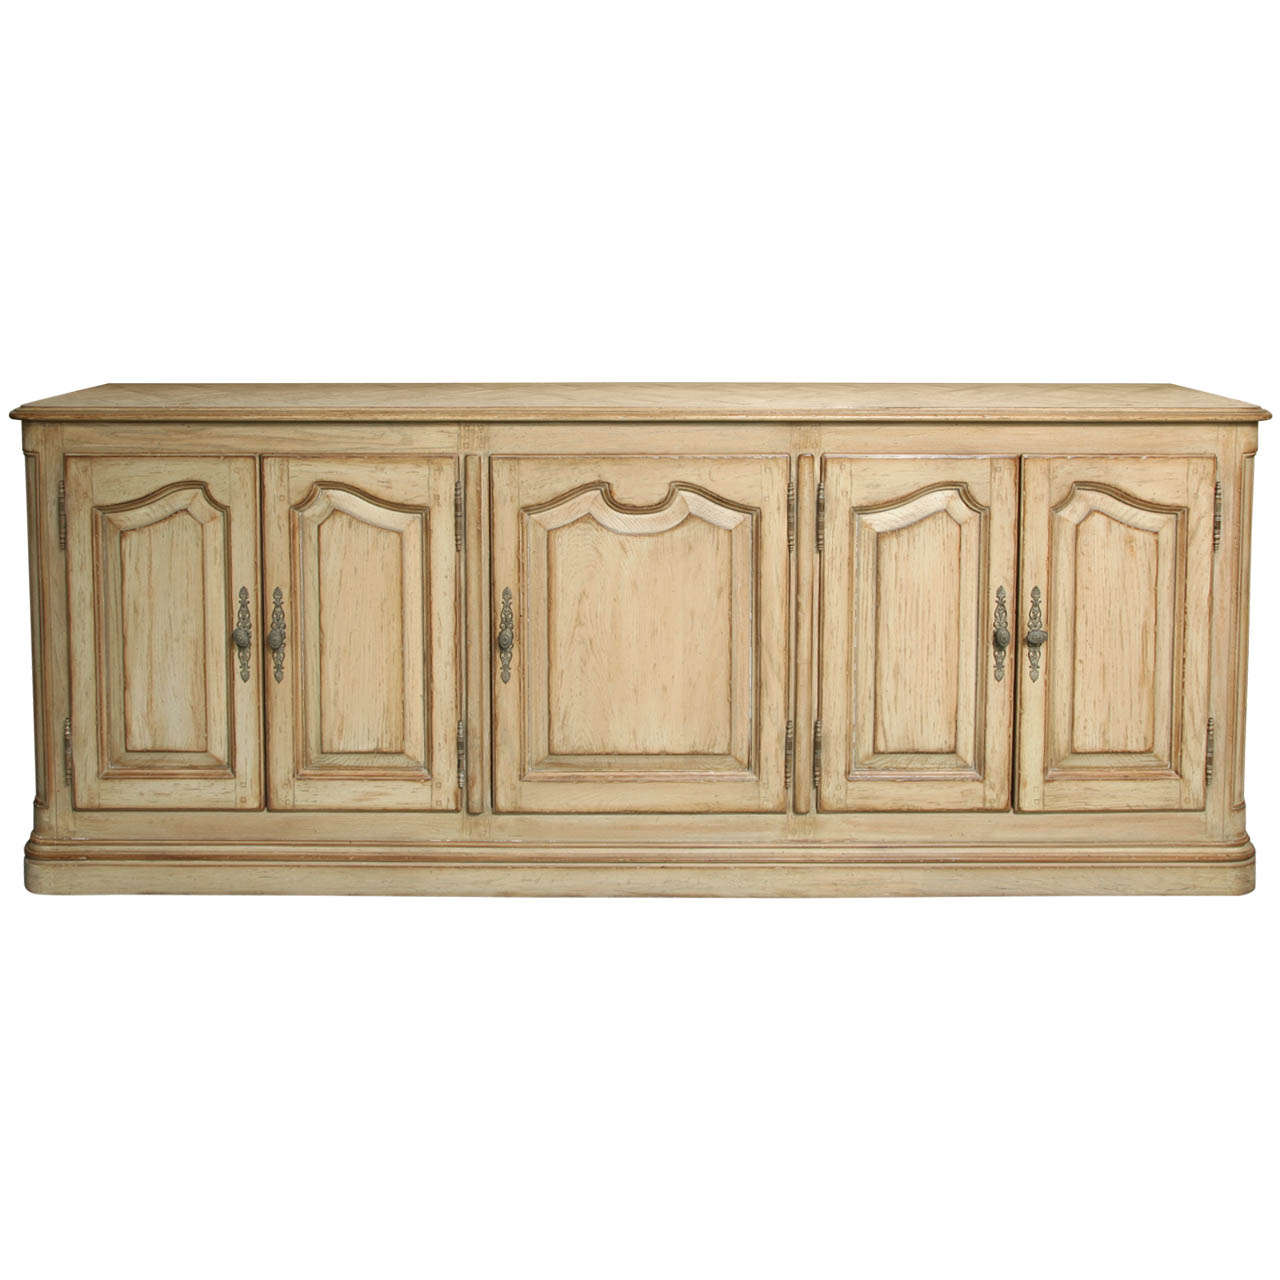 Cerused French Oak Kitchens And Cabinets: A French Provincial Cerused Oak Side Cabinet At 1stdibs